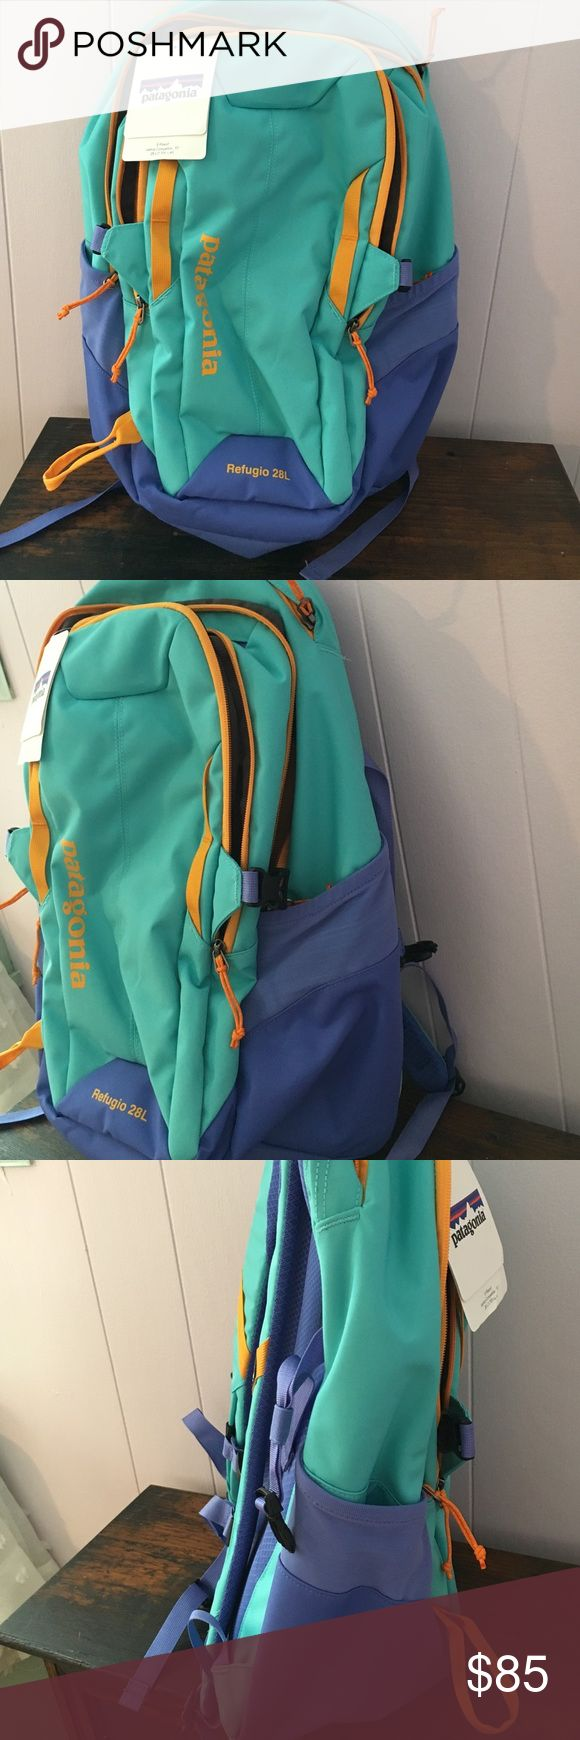 NEW WITH TAGS PATAGONIA BACKPACK Patagonia Refugio 28L backpack. New with tags I just wanted something bigger for school and this backpack didn't work out. Patagonia Bags Backpacks